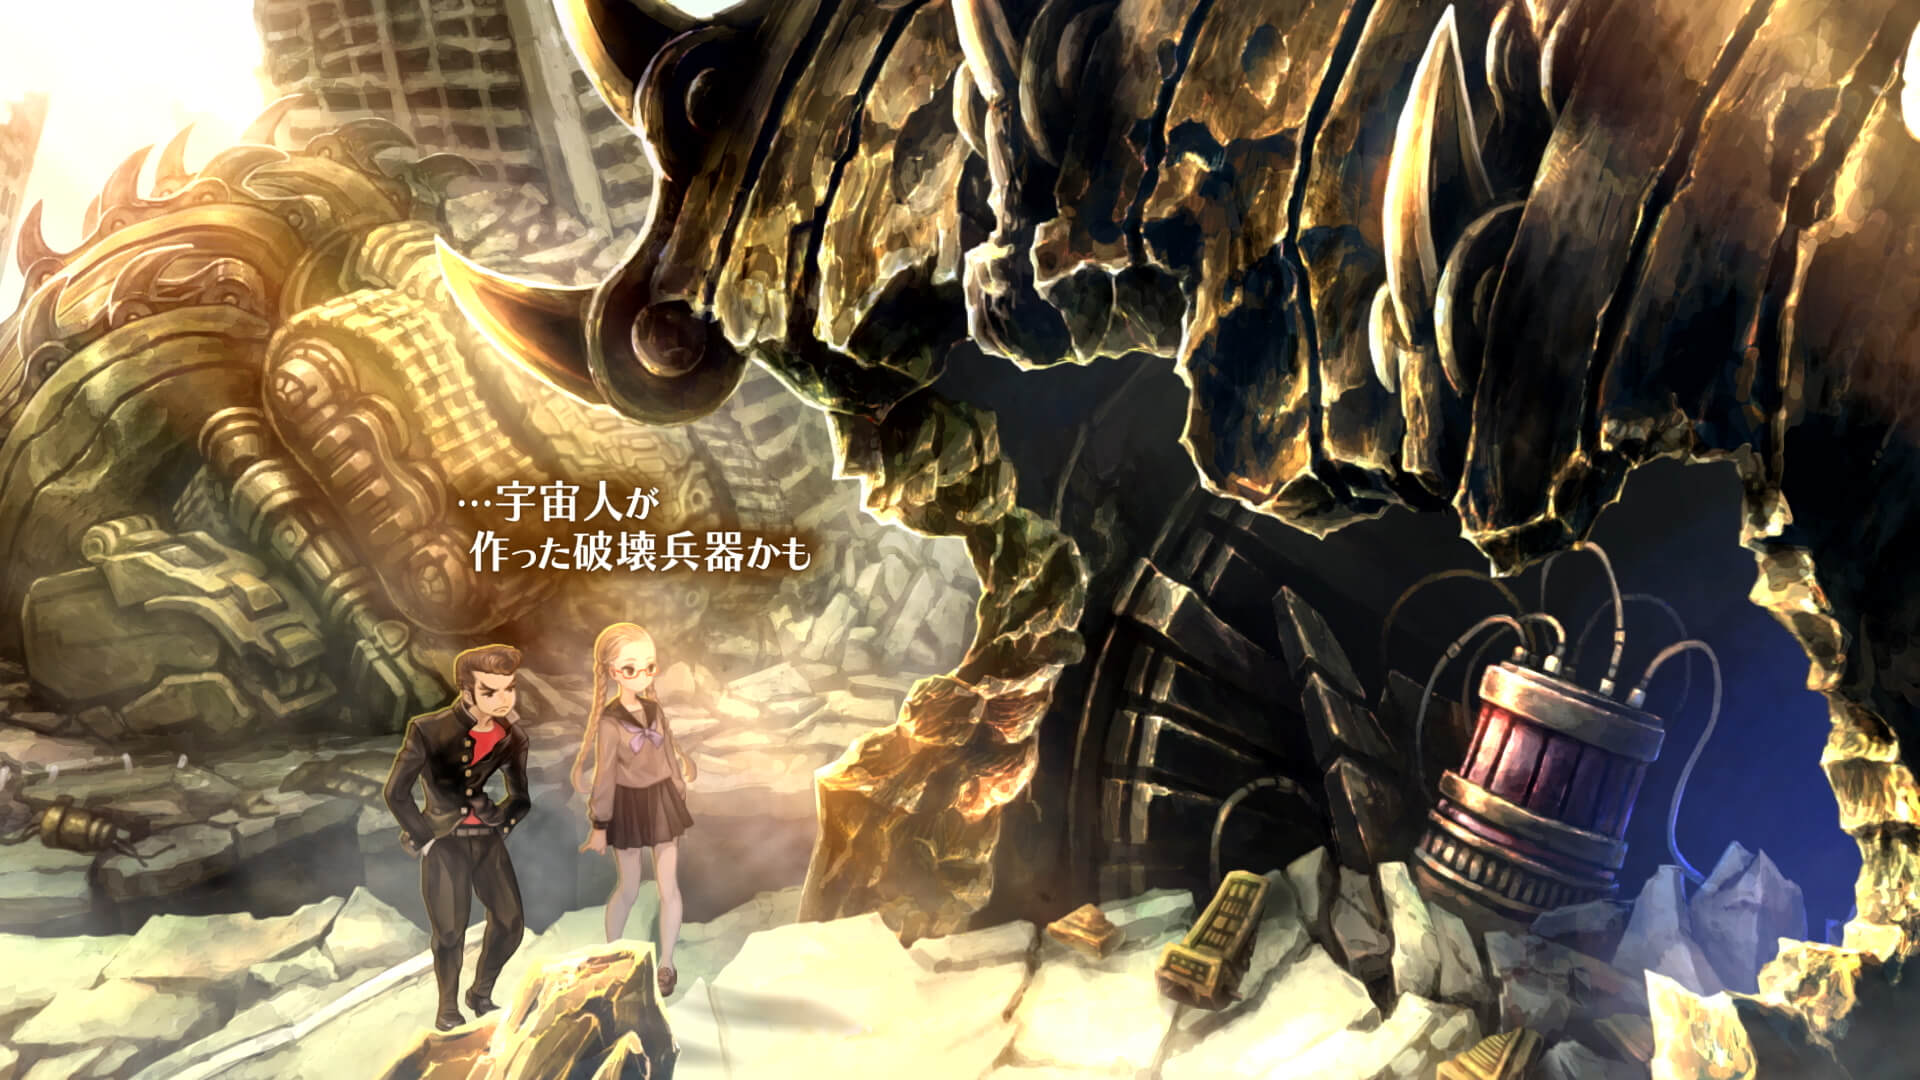 13 Sentinels Aegis Rim Screenshot with two chracters in front of a hollowed out robot